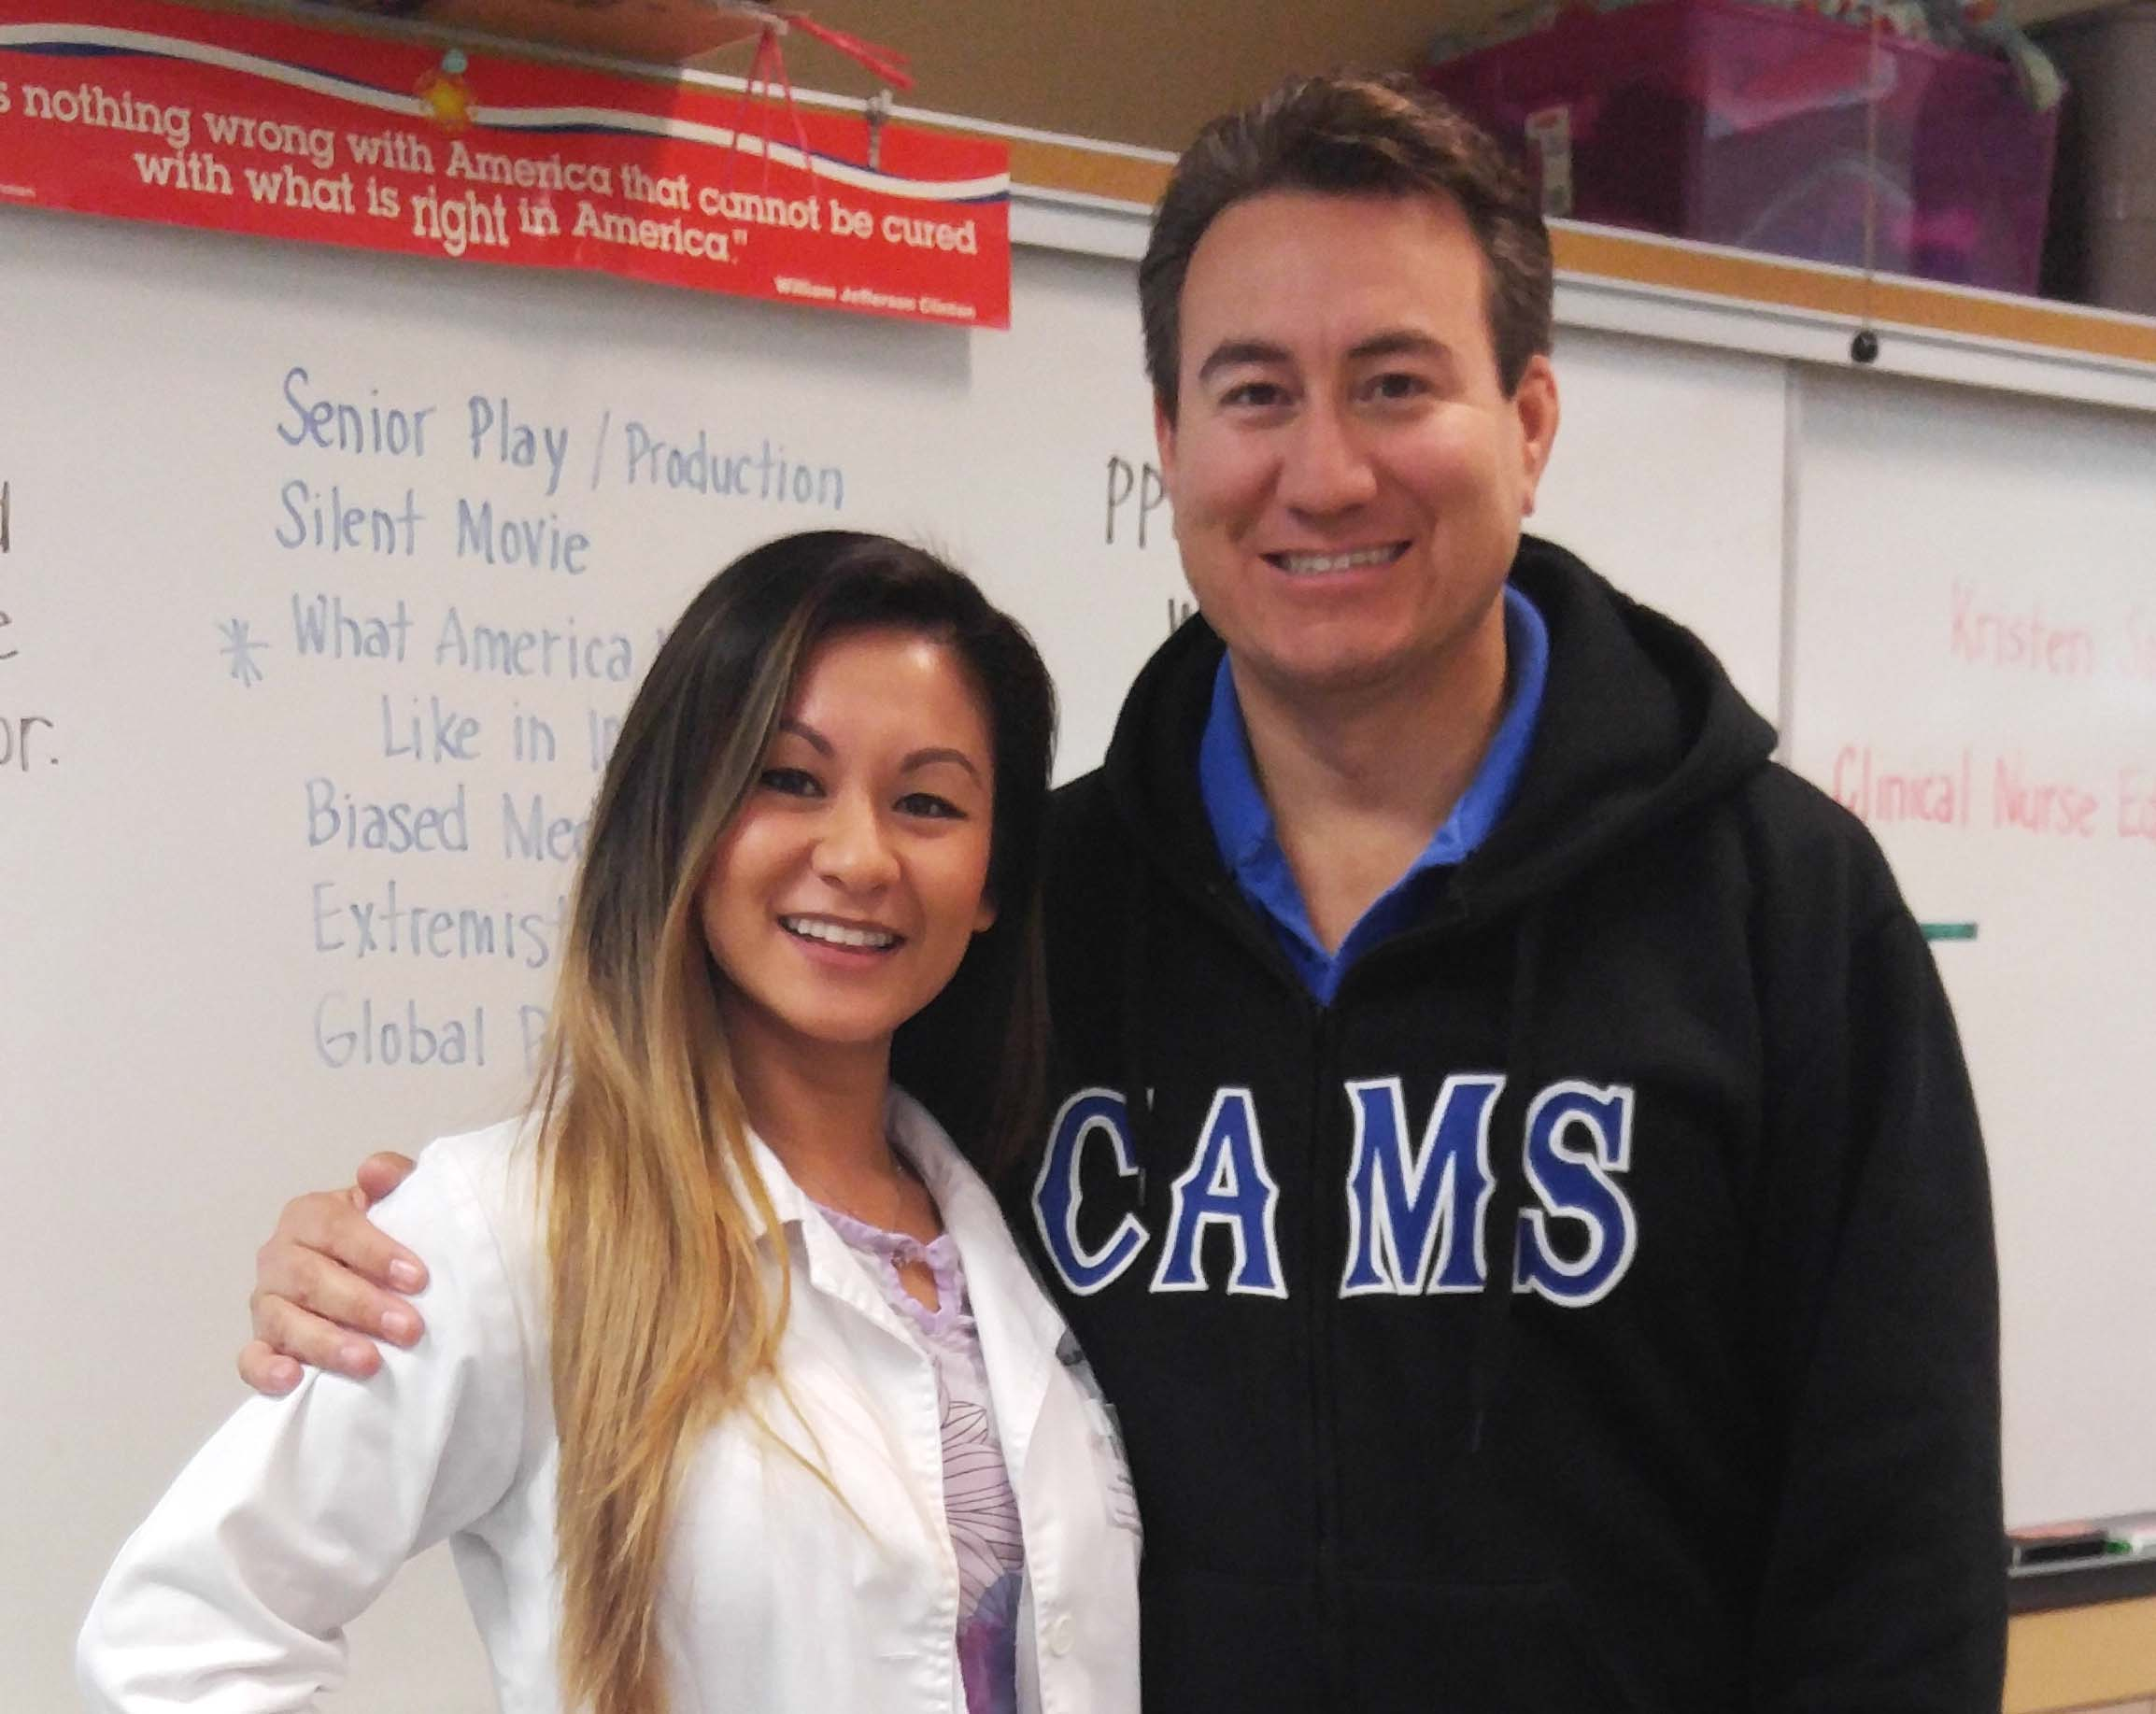 AUHS Instructor Inspires Students at CAMS Career Day